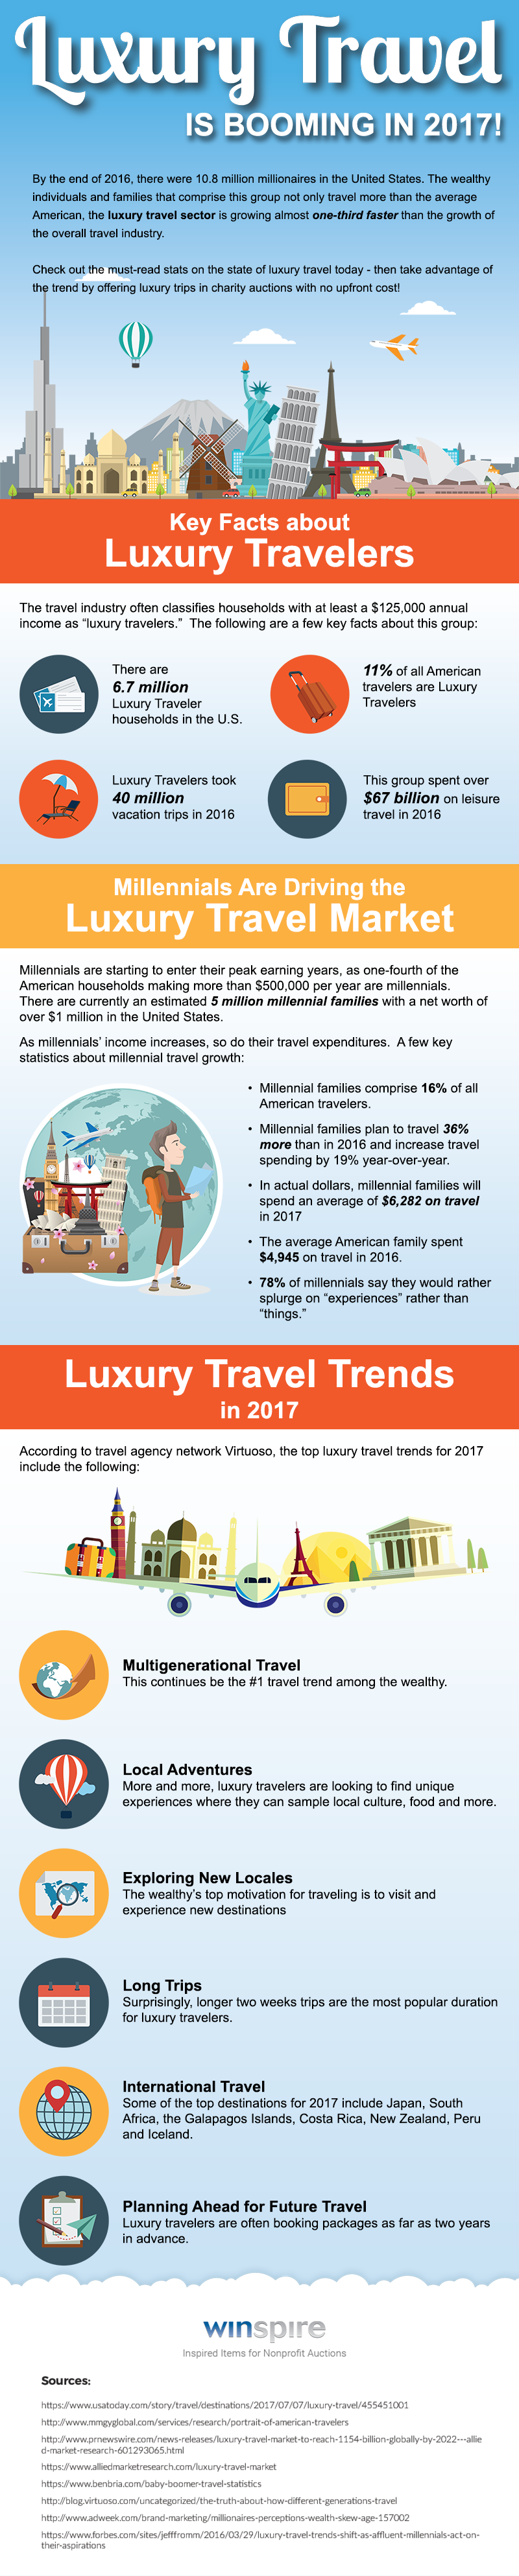 Luxury_Travel_Is_Booming-Infographic.png